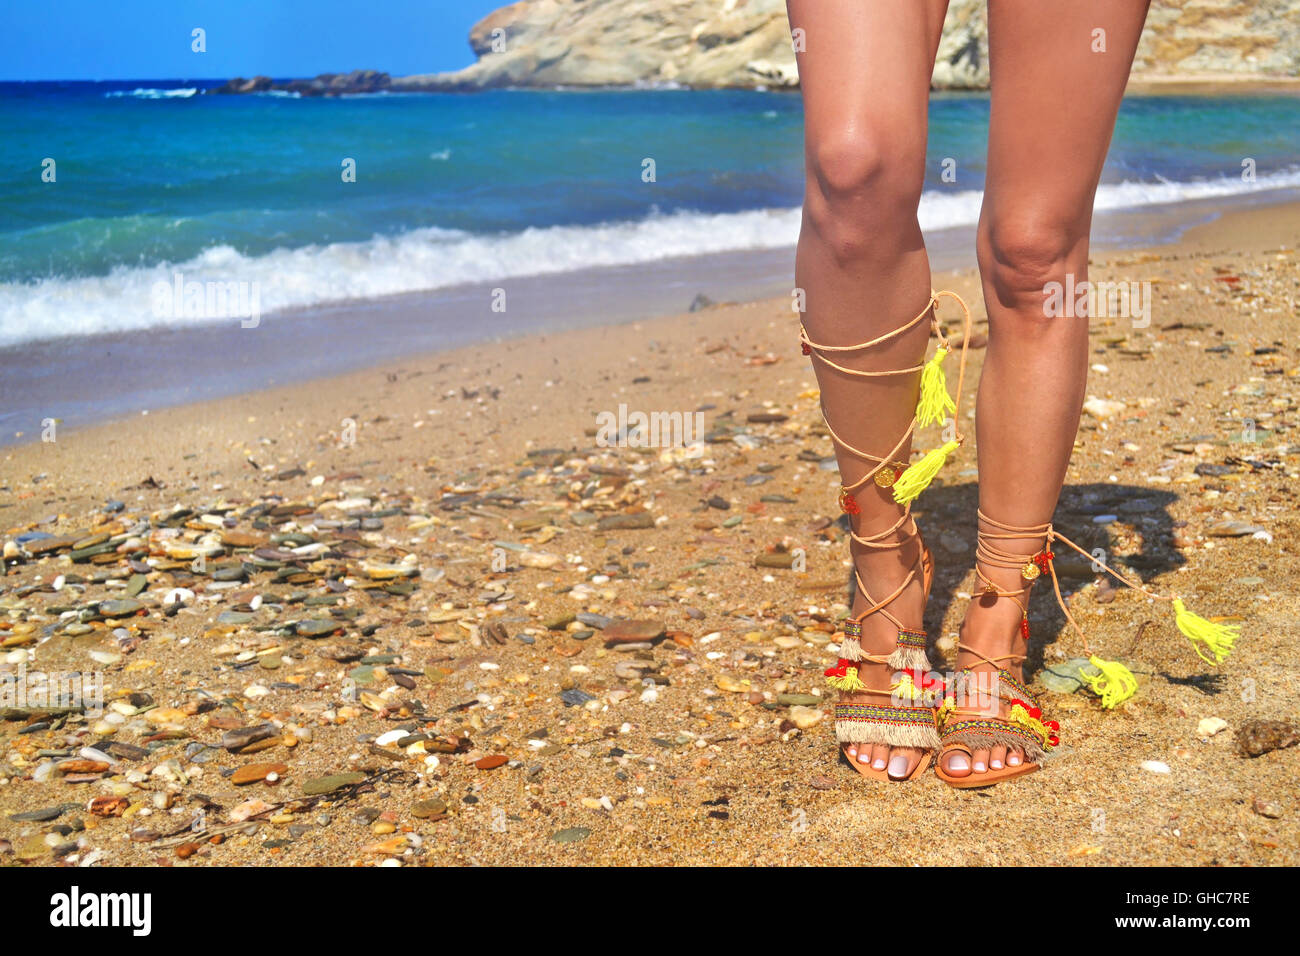 4ab547221335 model advertises bohemian greek sandals at the beach - summer shoes  advertisement - Stock Image